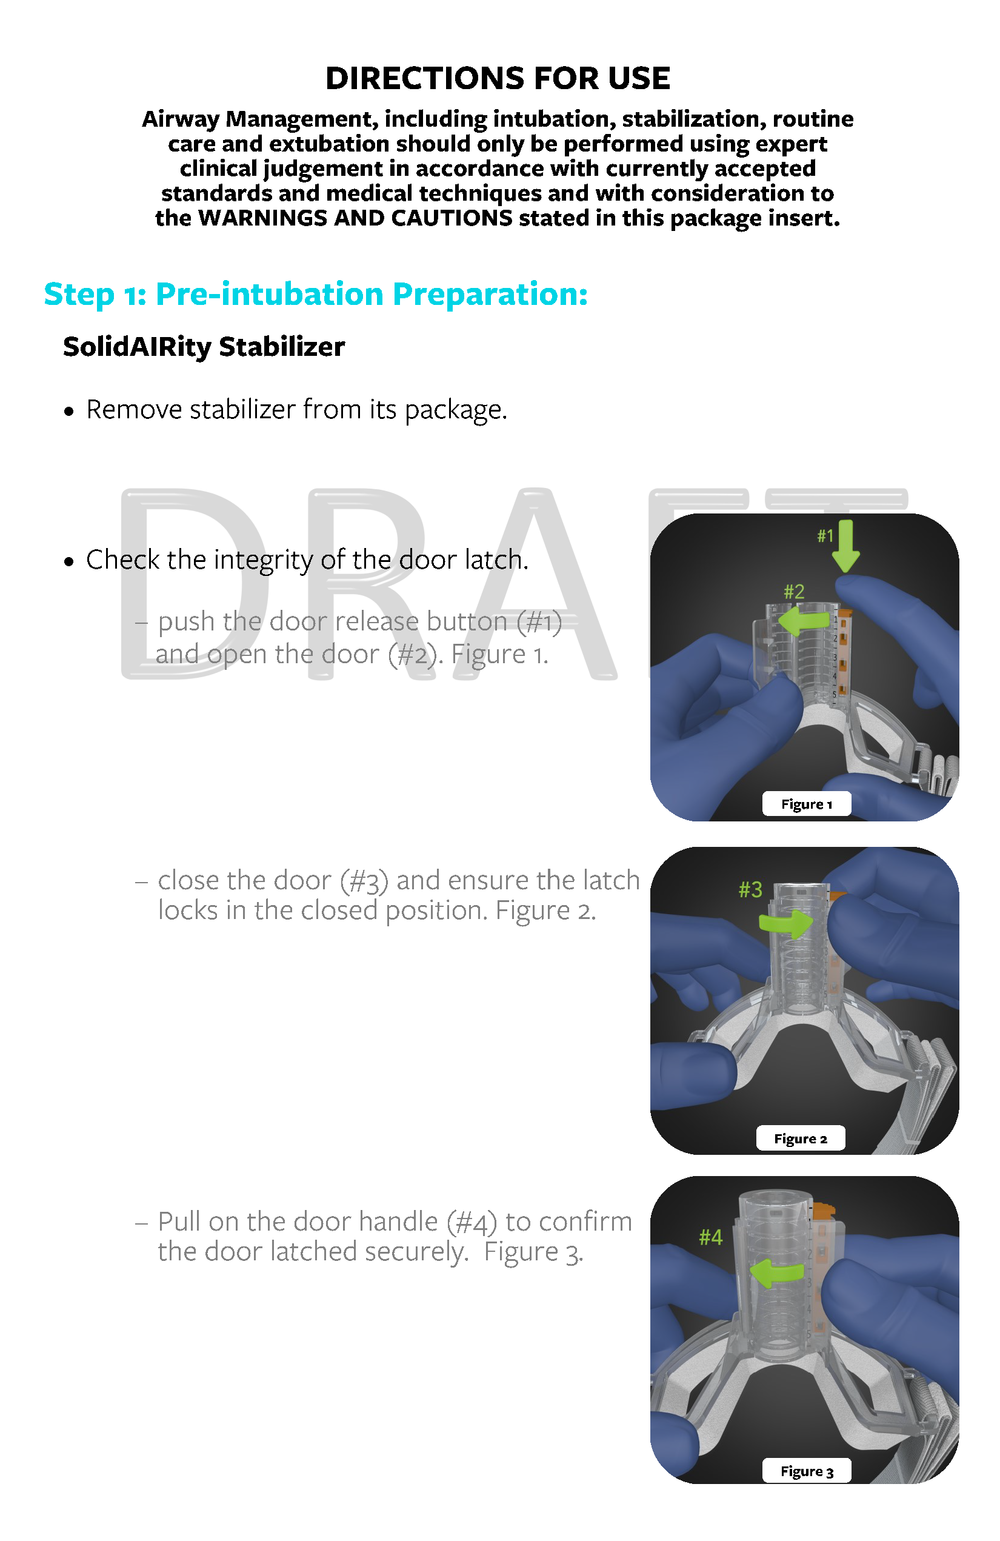 3.4040 Rev X1_Instructions for Use_SolidAIRity Airway Stabilization System_FINAL DRAFT 10.13.2017_Page_05.png